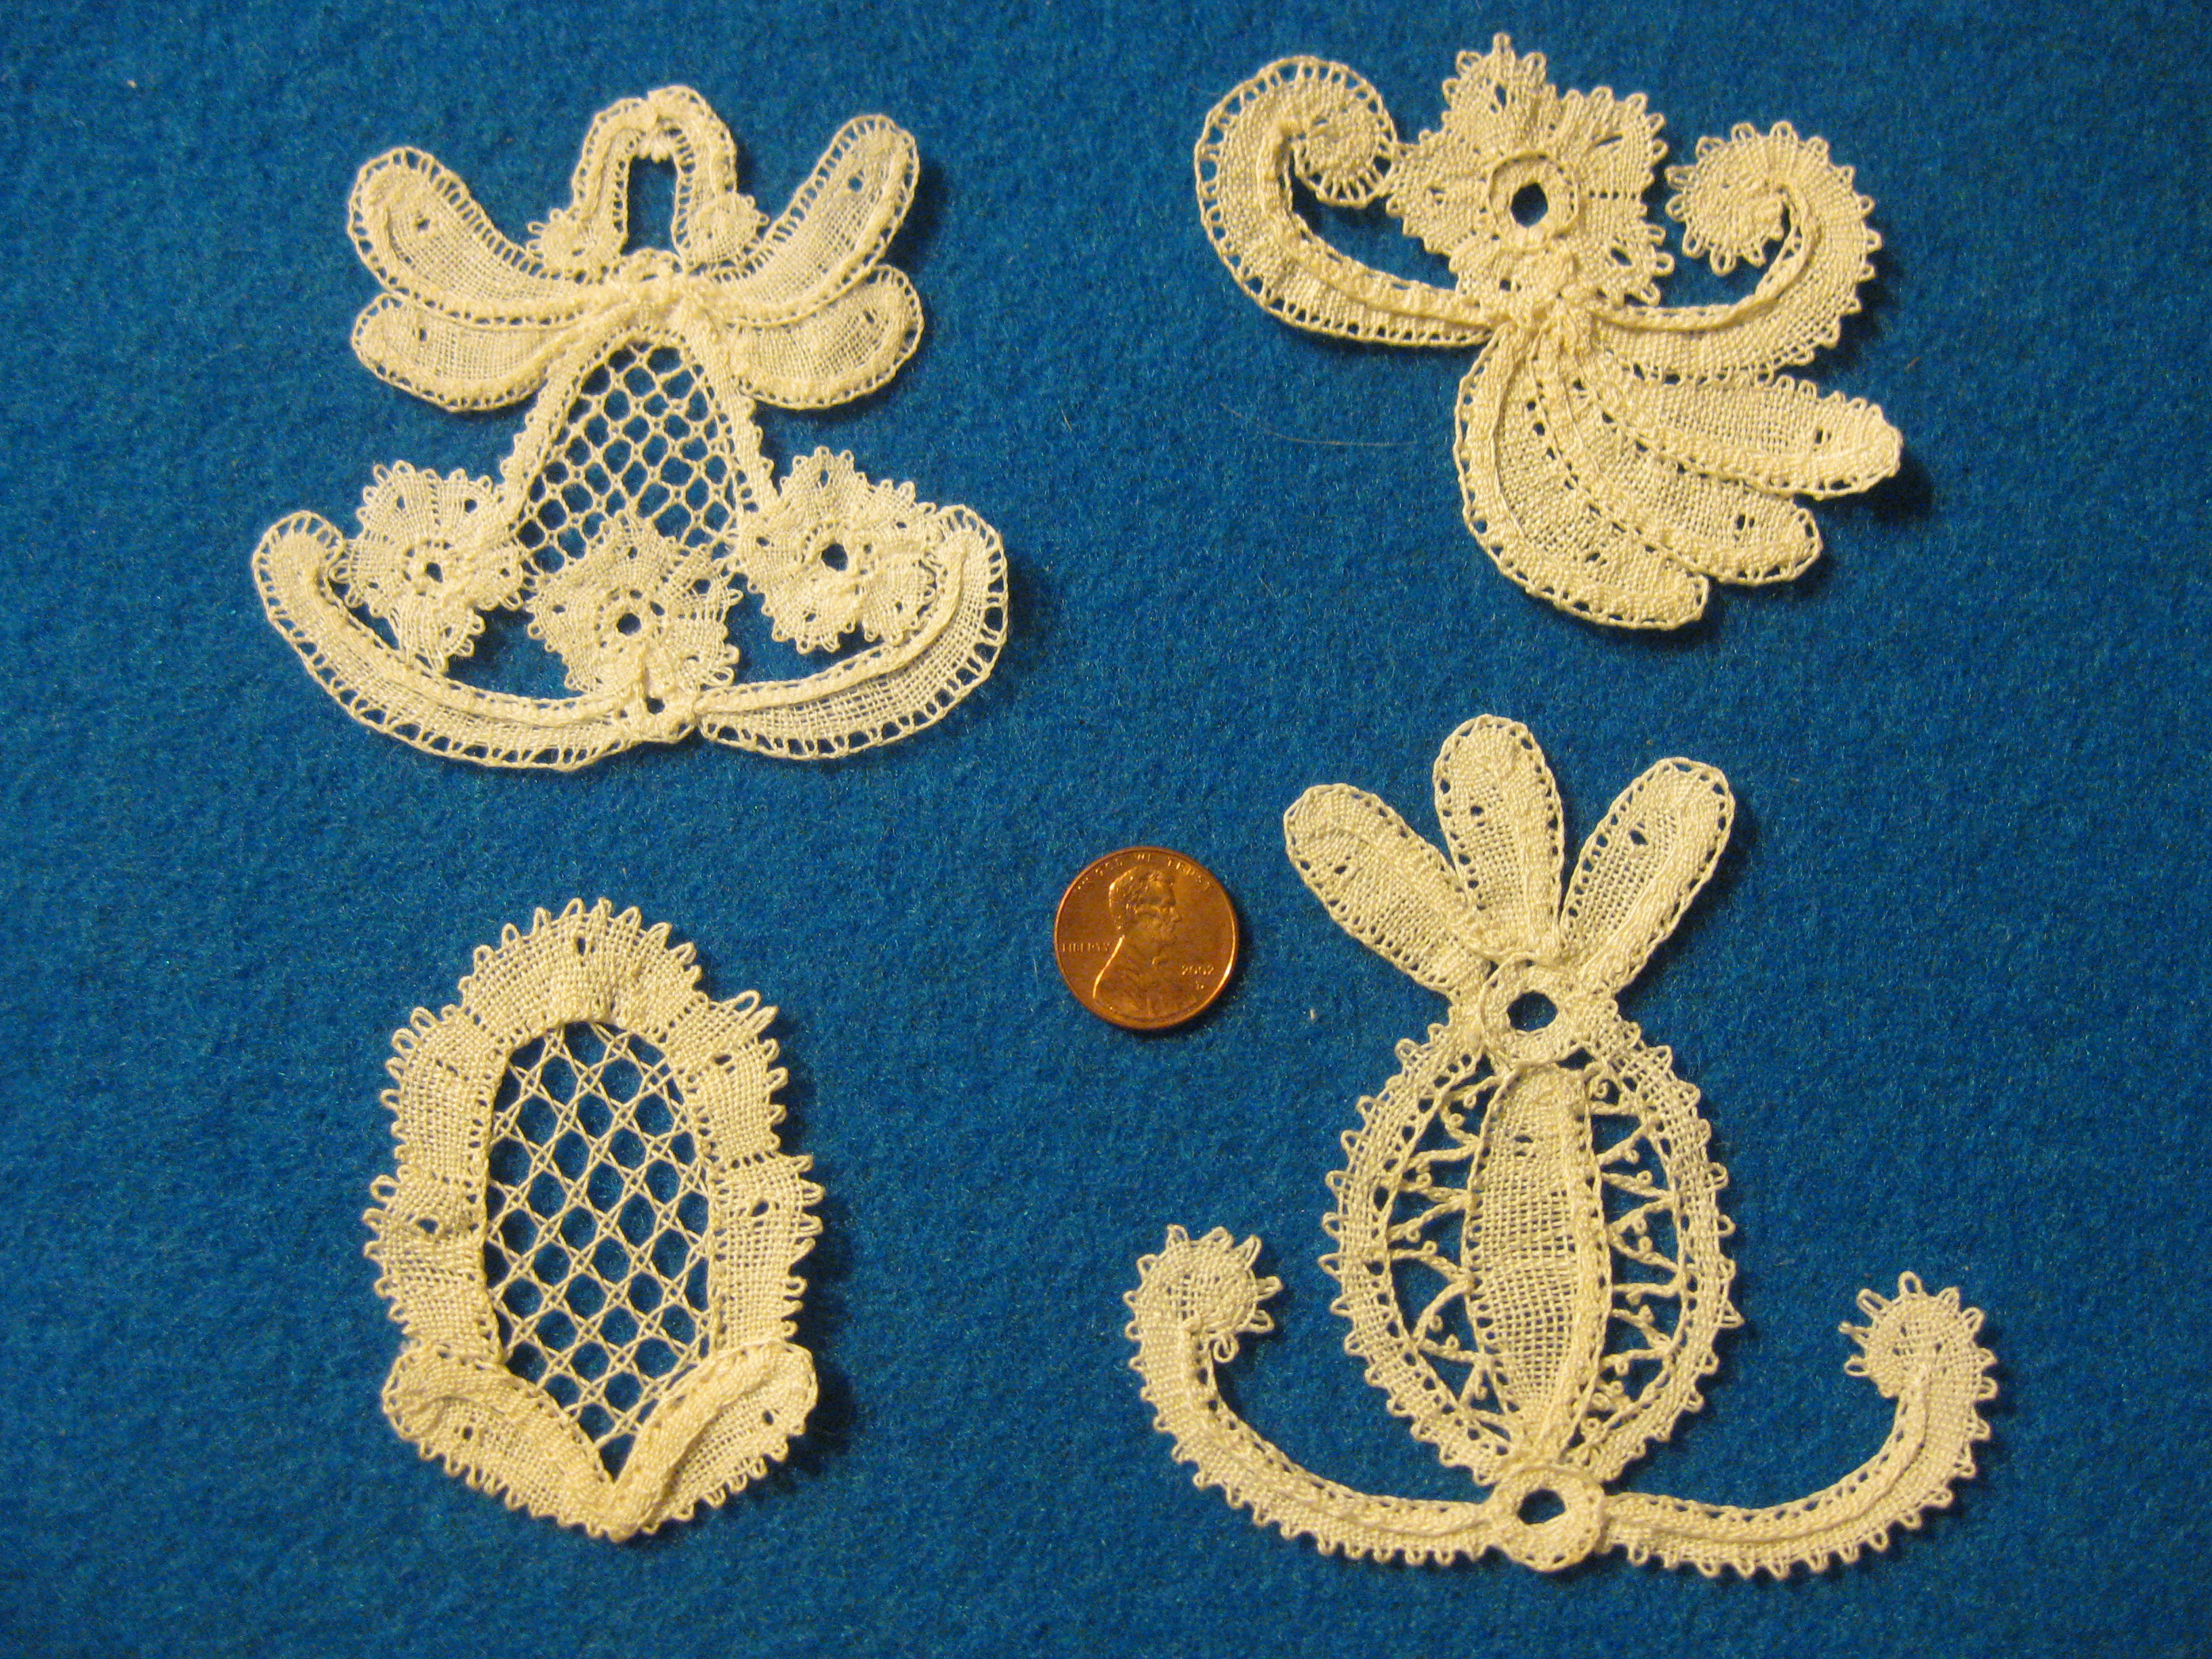 Belgian Rosaline lace samples in large thread by Maria Provencher